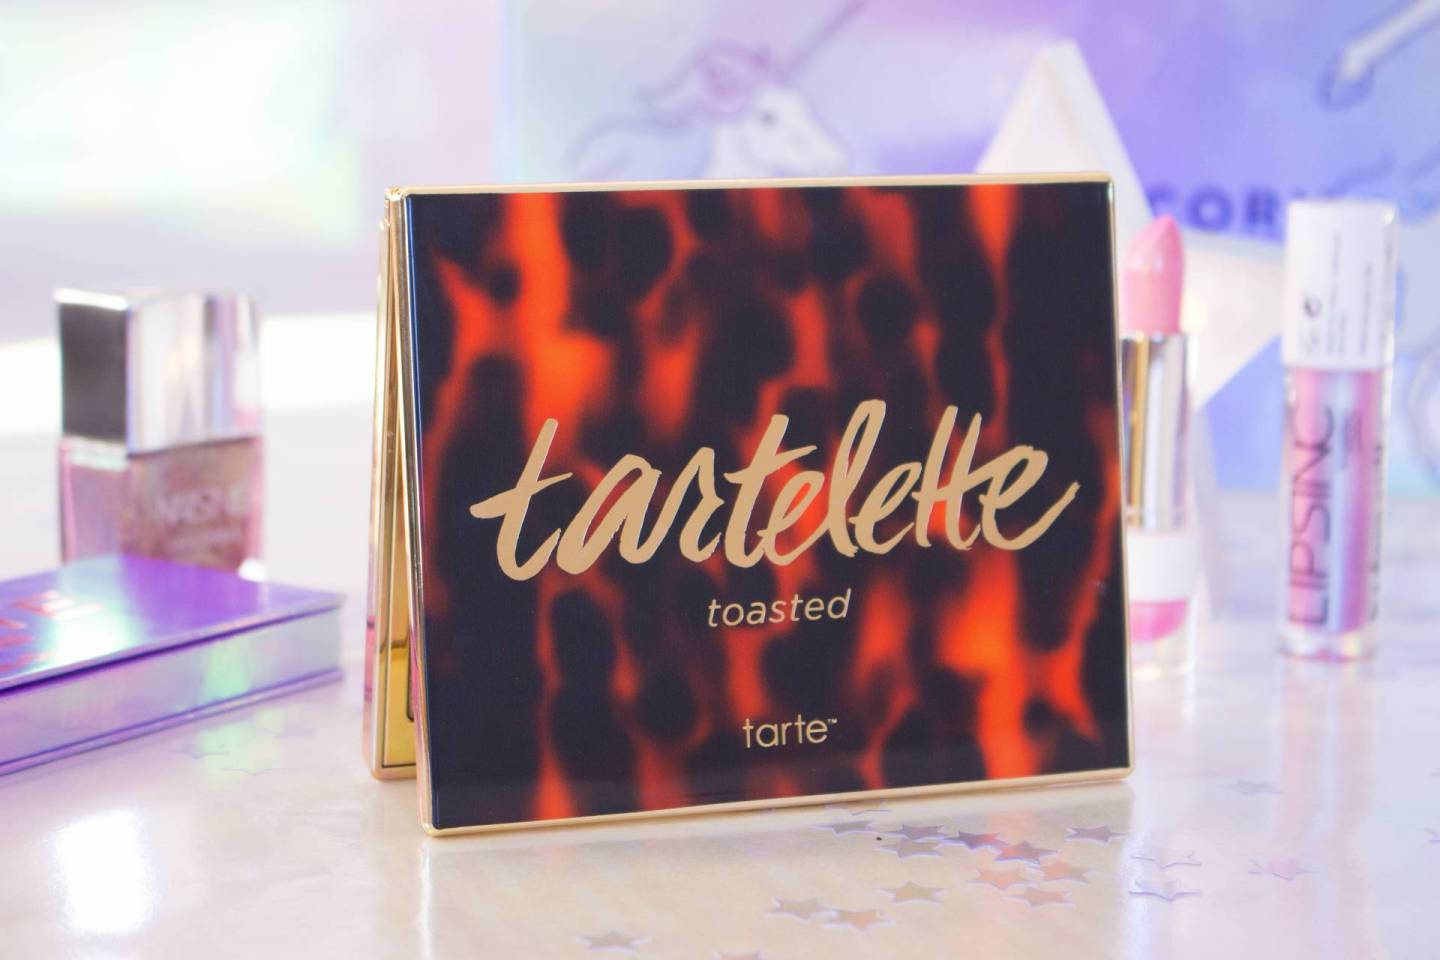 Tarte – Tartlette Toasted Review & Swatches